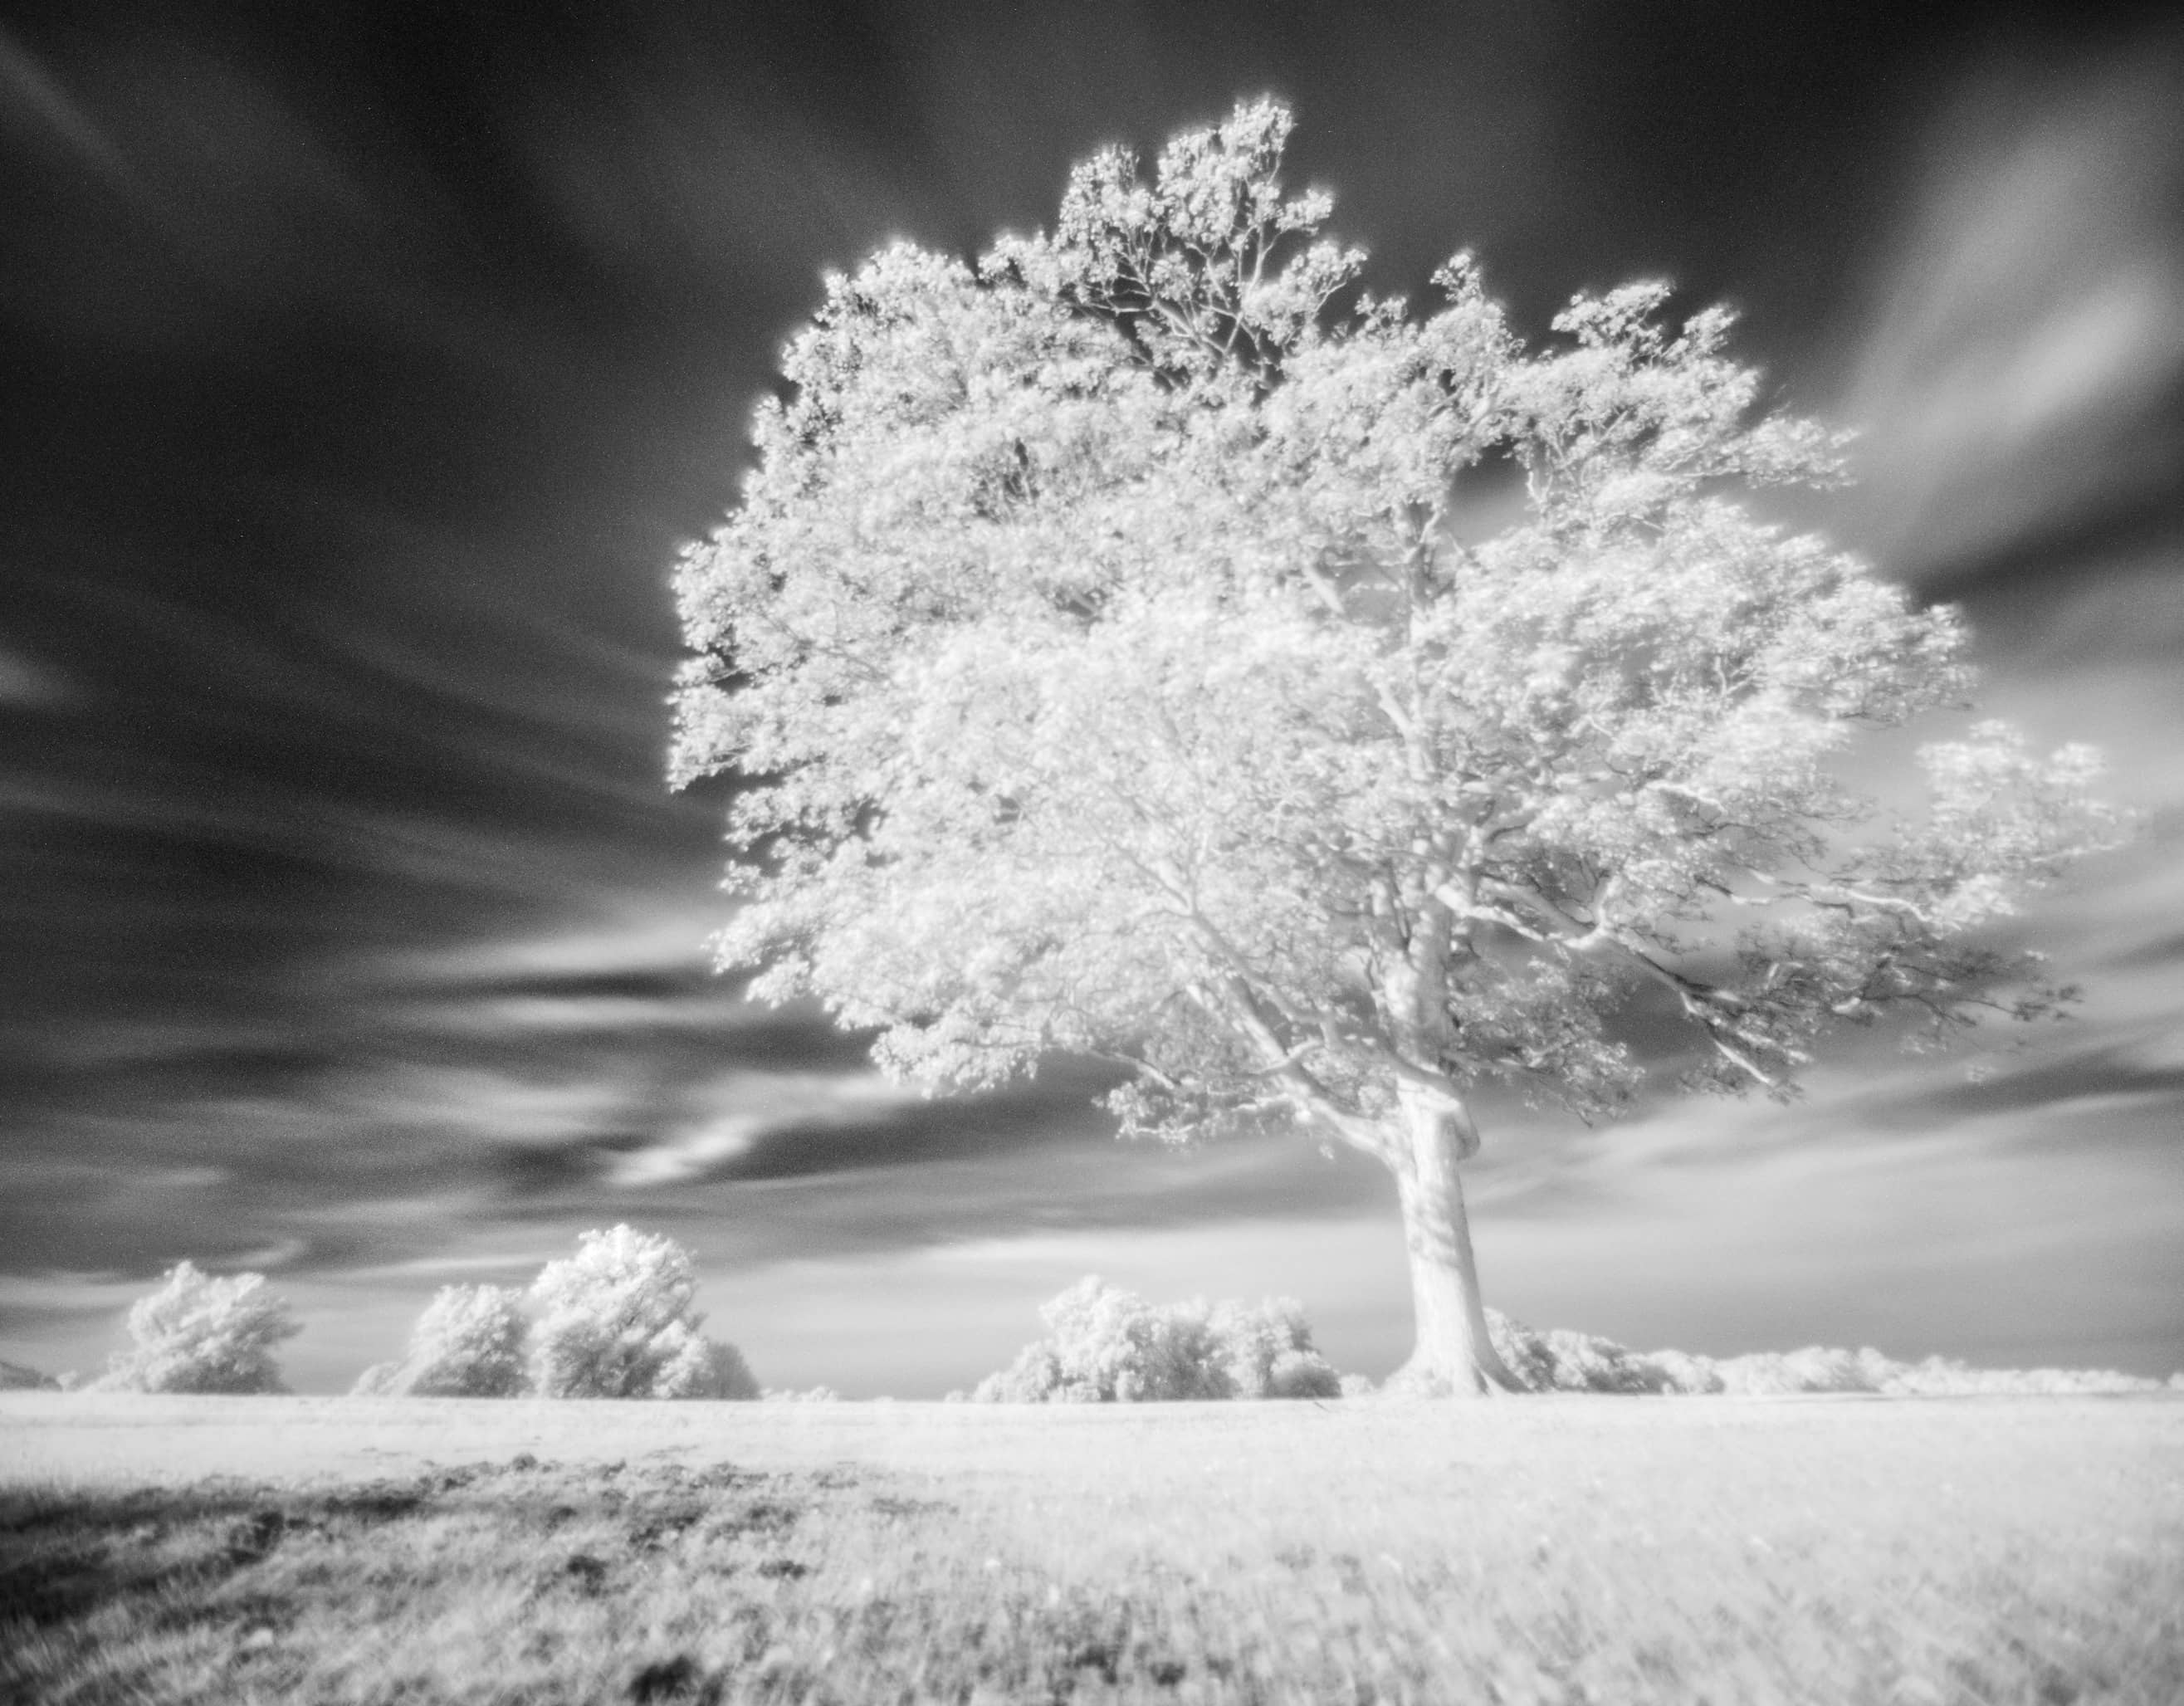 Take infrared photos on a tight budget